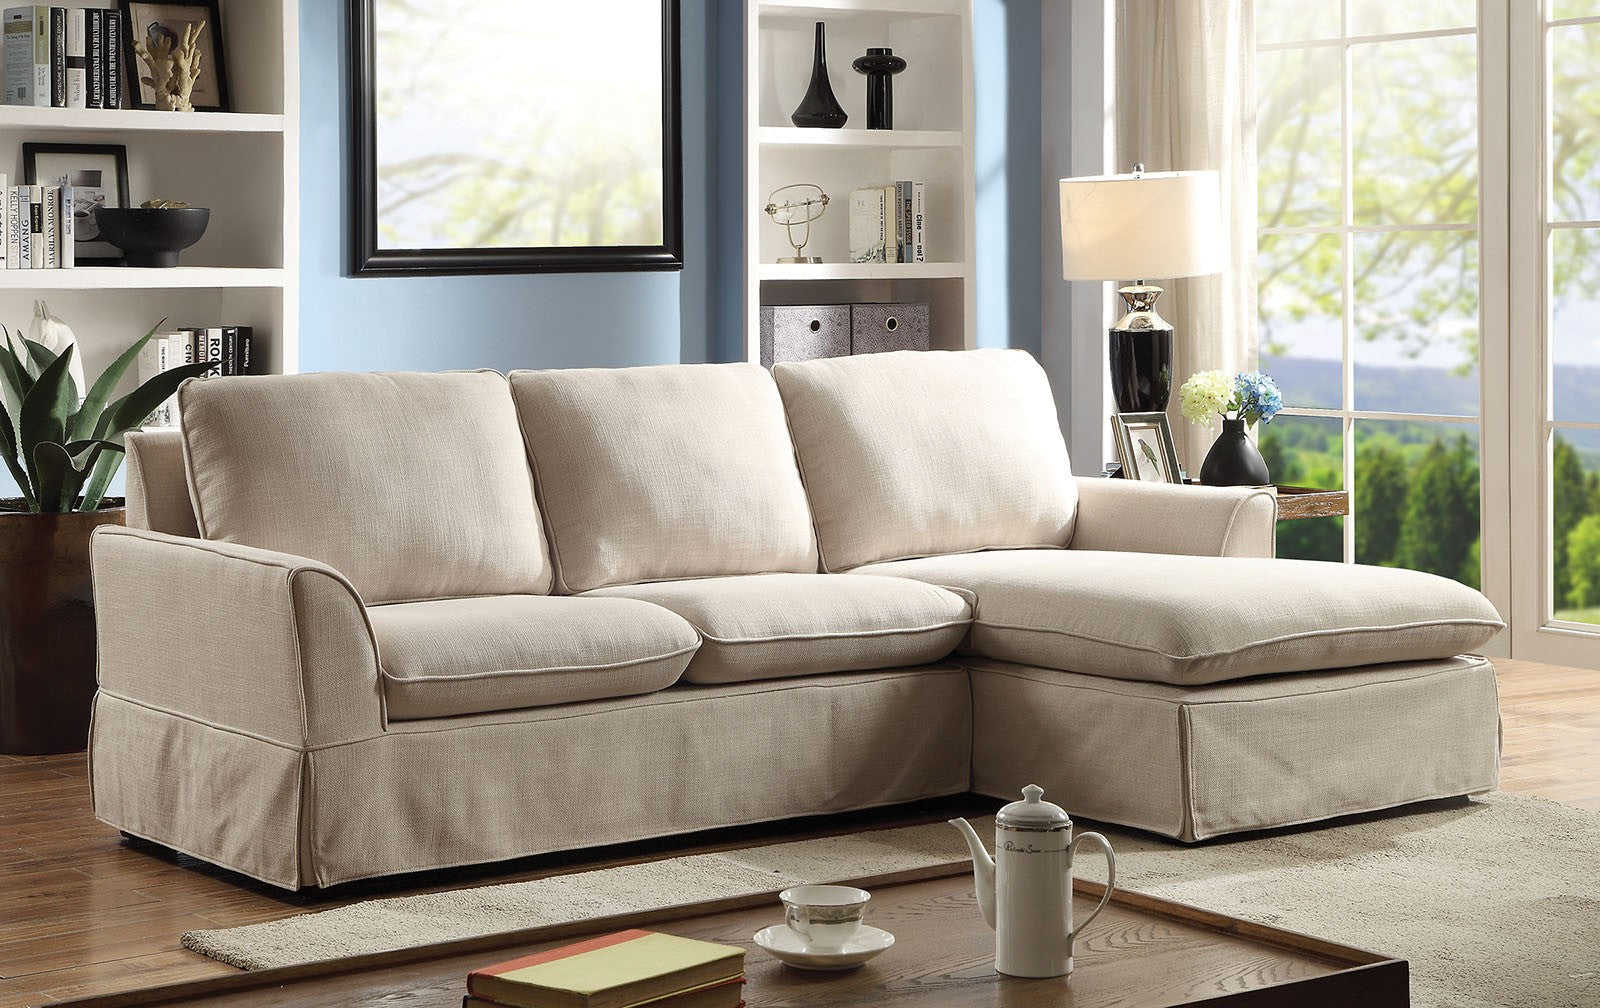 Maxine Ii Linen Beige Transitional Solid Wood Sectional